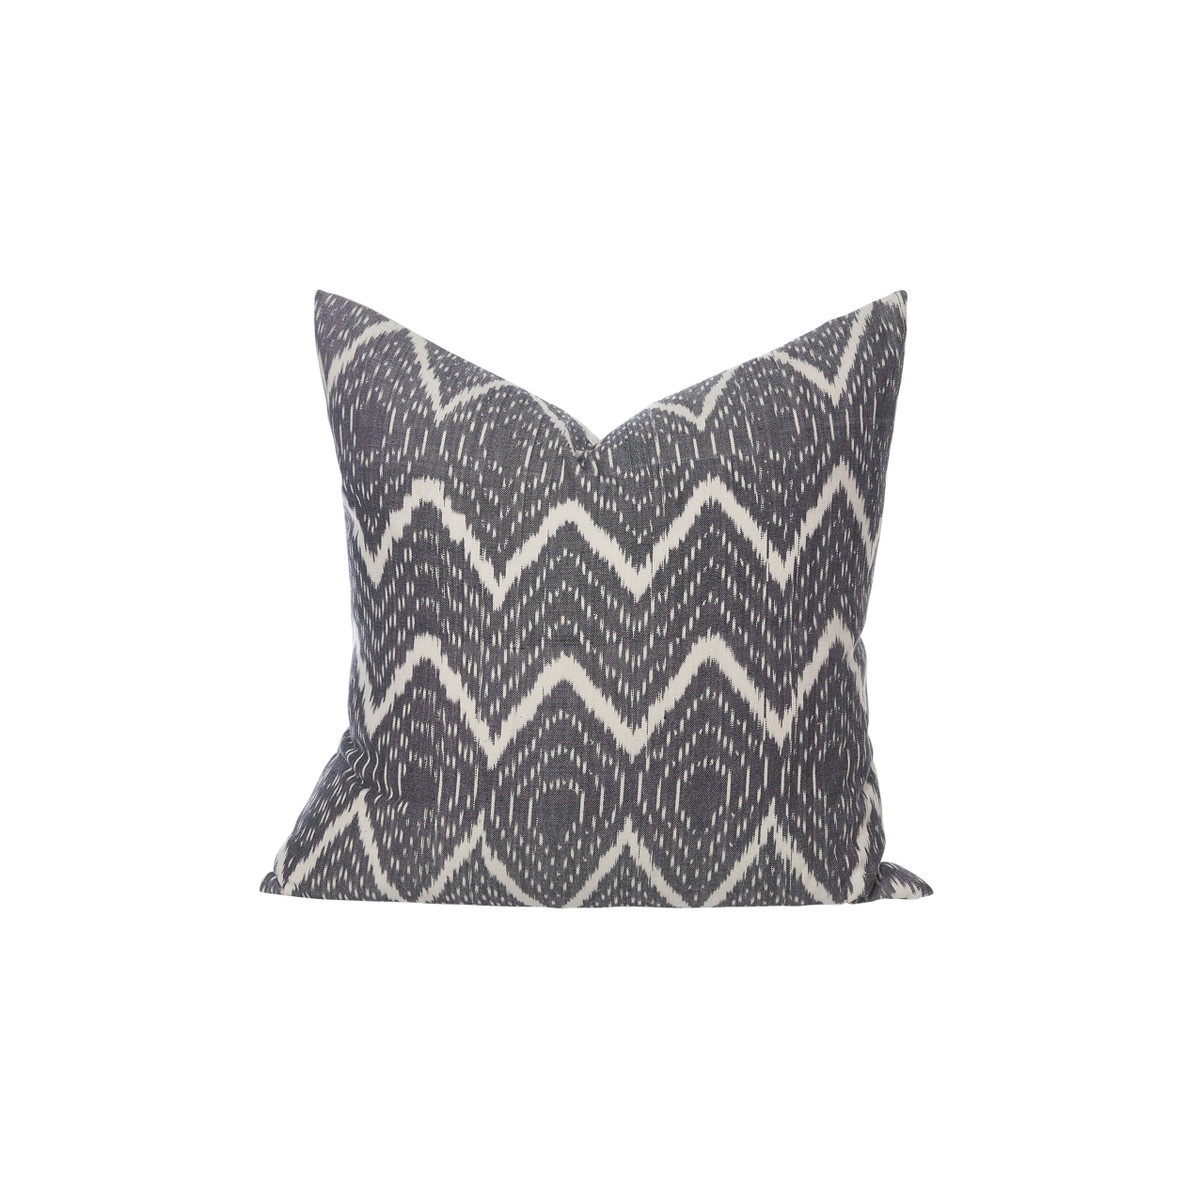 Raj - Hand Loomed Ikat Pewter Gray and ivory decorative pillow - Front